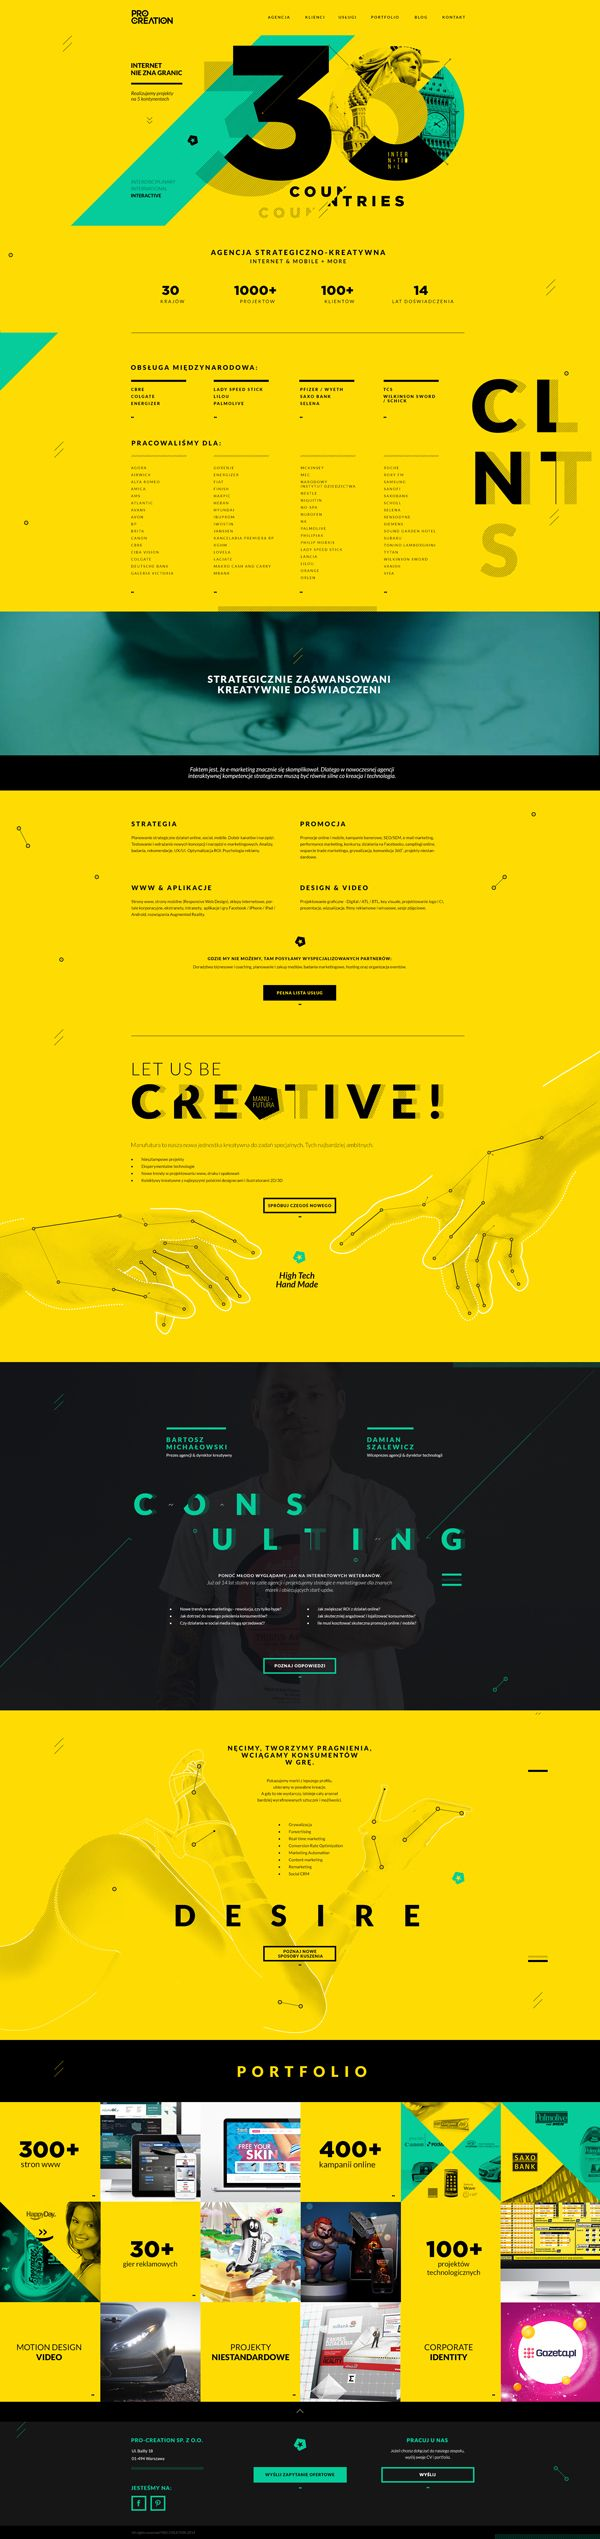 Pro Creation Modern Website Design